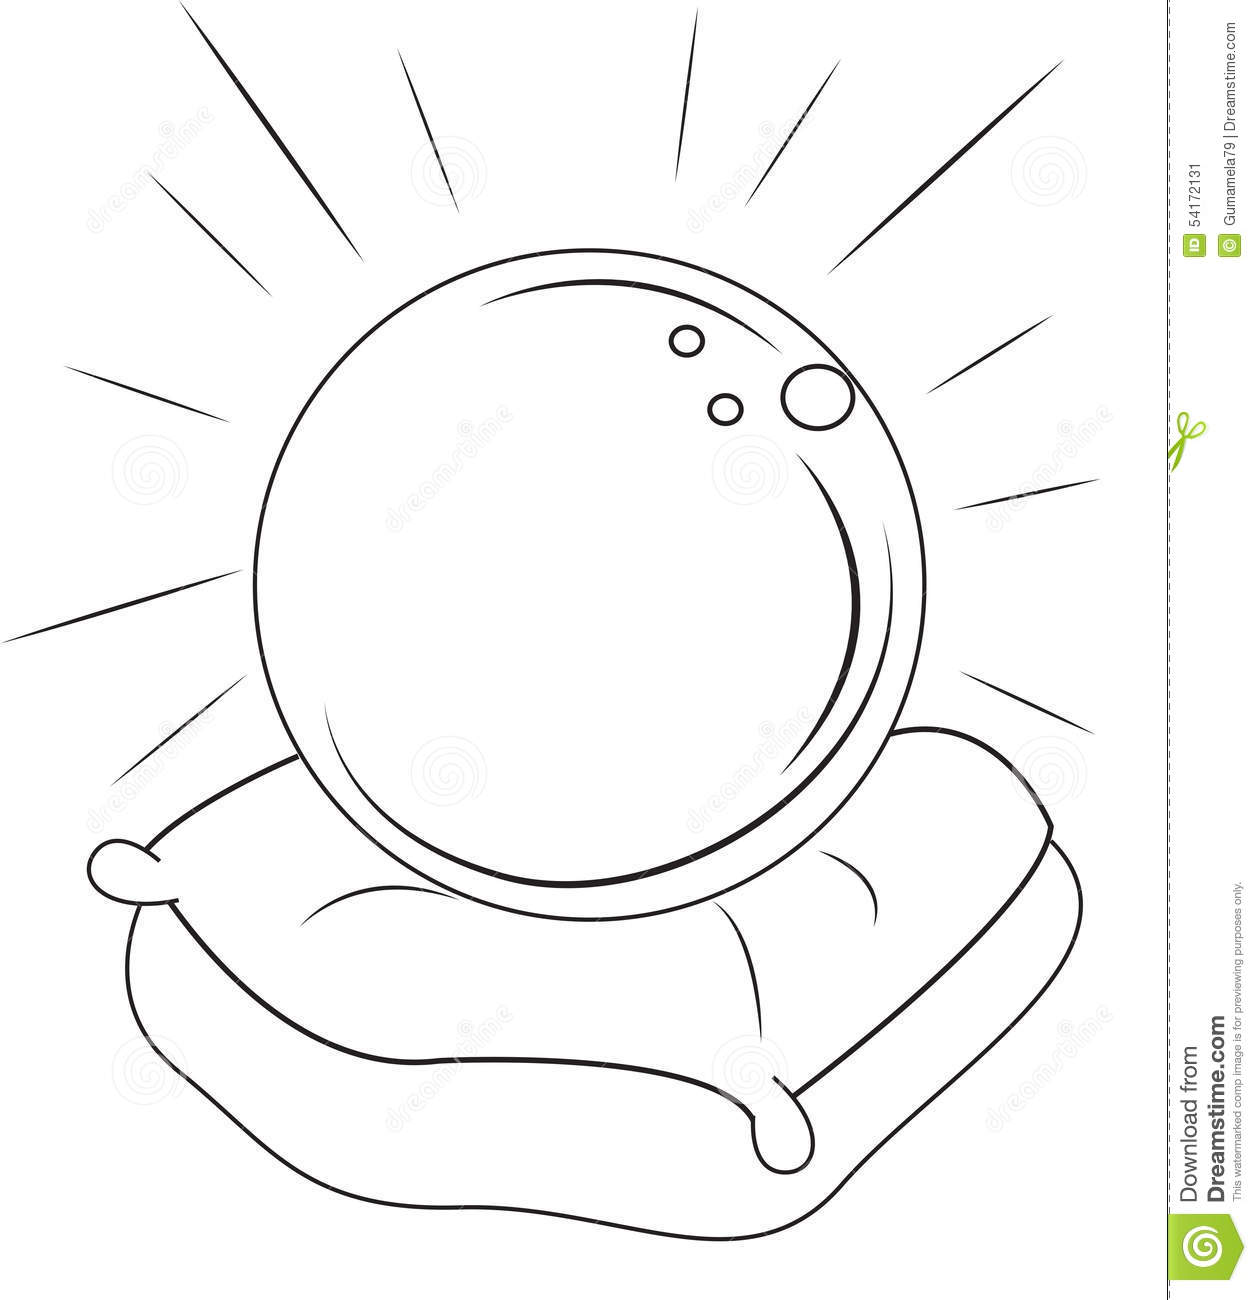 crystal ball coloring pages - photo#15